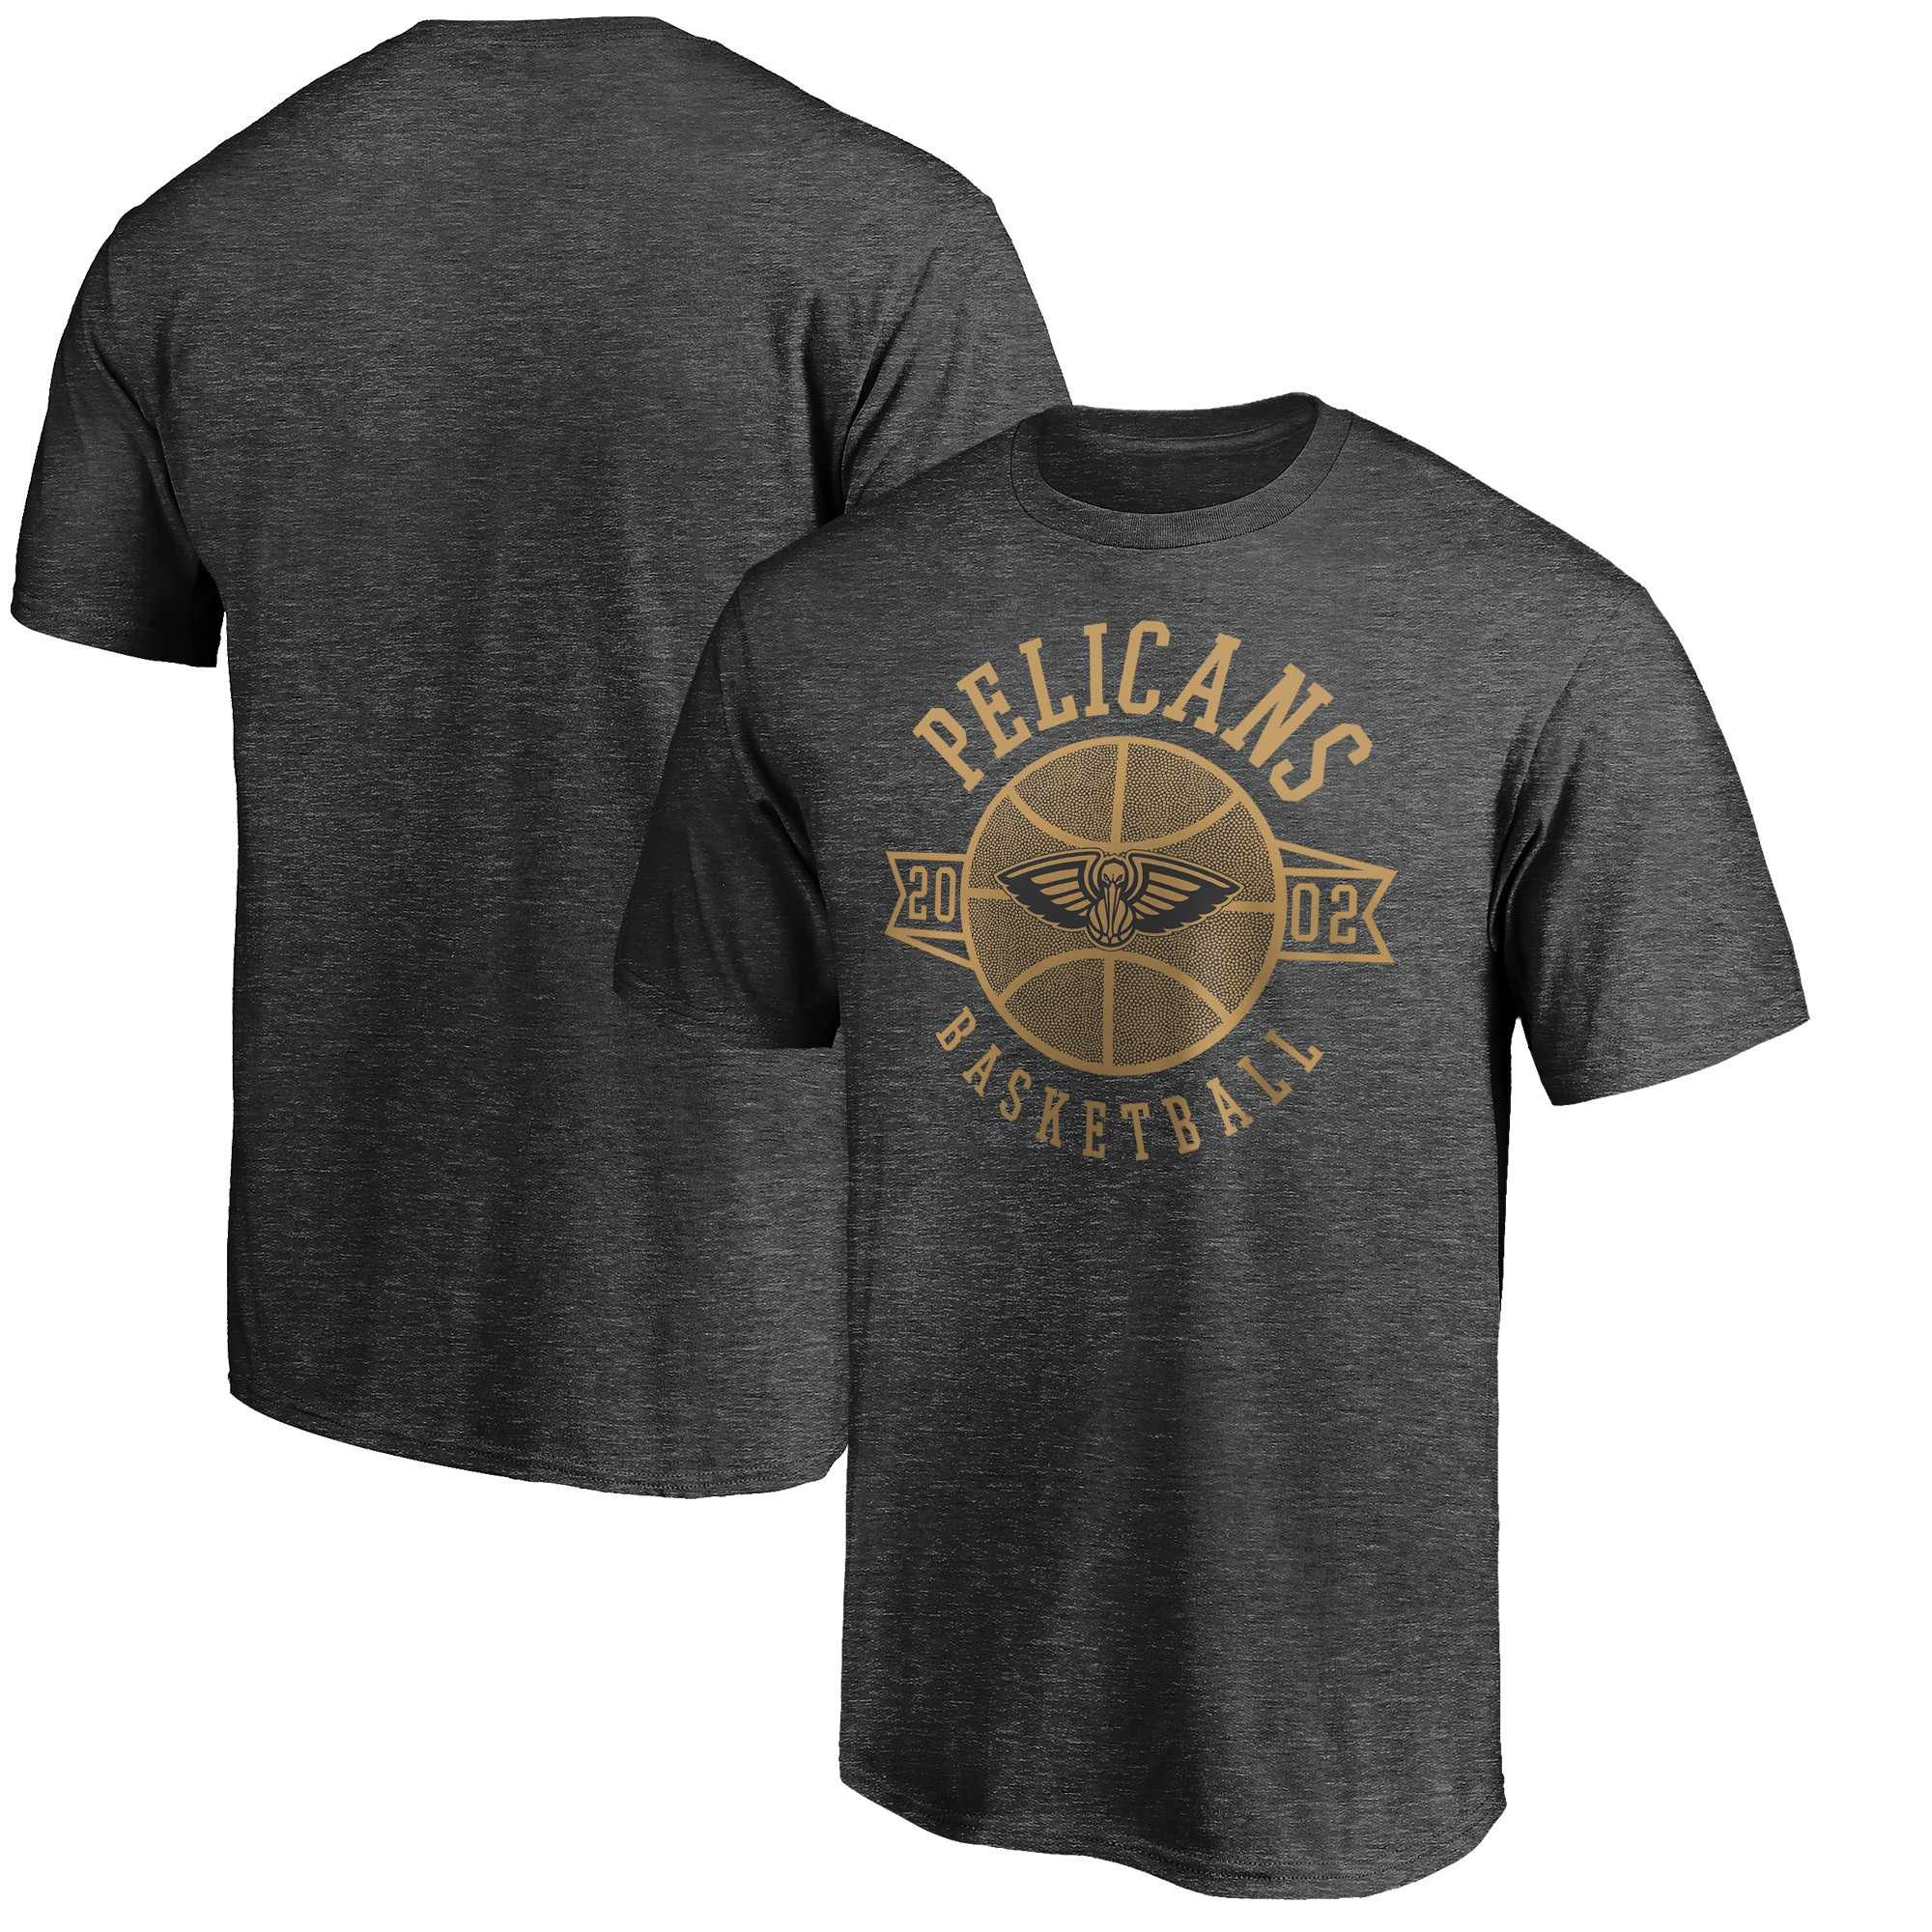 New Orleans Pelicans Fanatics Branded Showtime International Foul T-Shirt - Heathered Charcoal